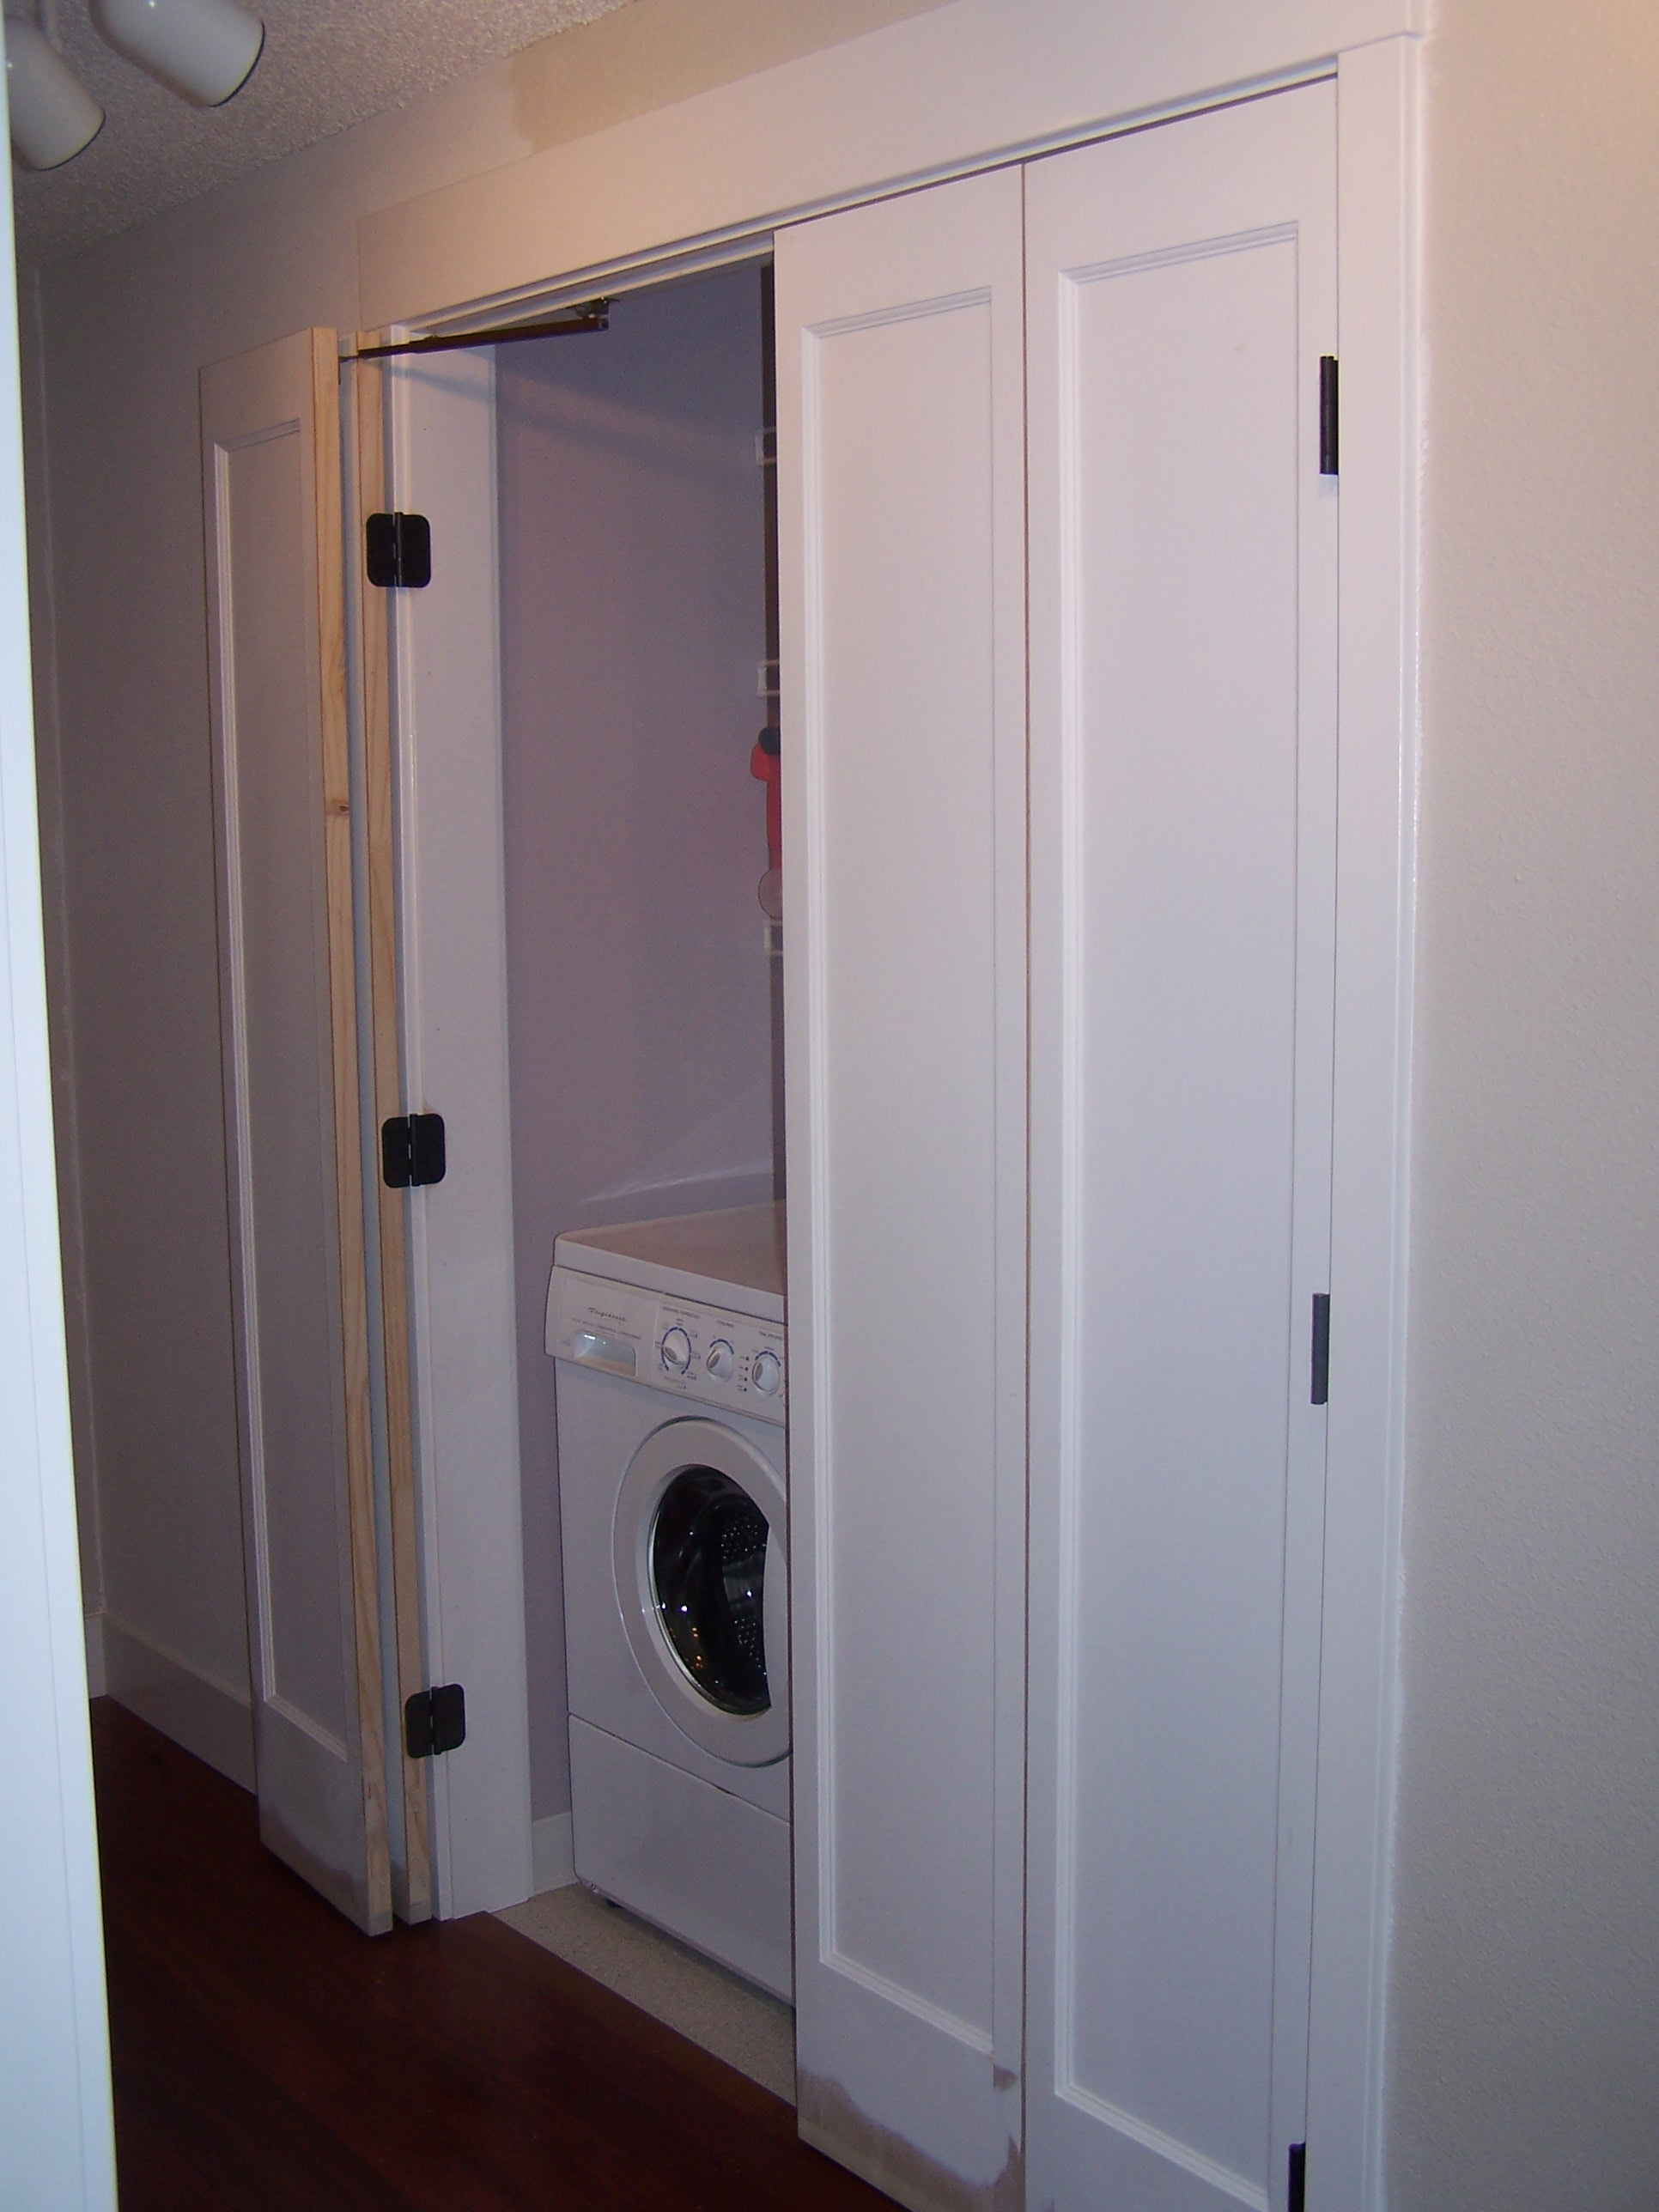 Laundry Room Door Size Simple Home Decoration